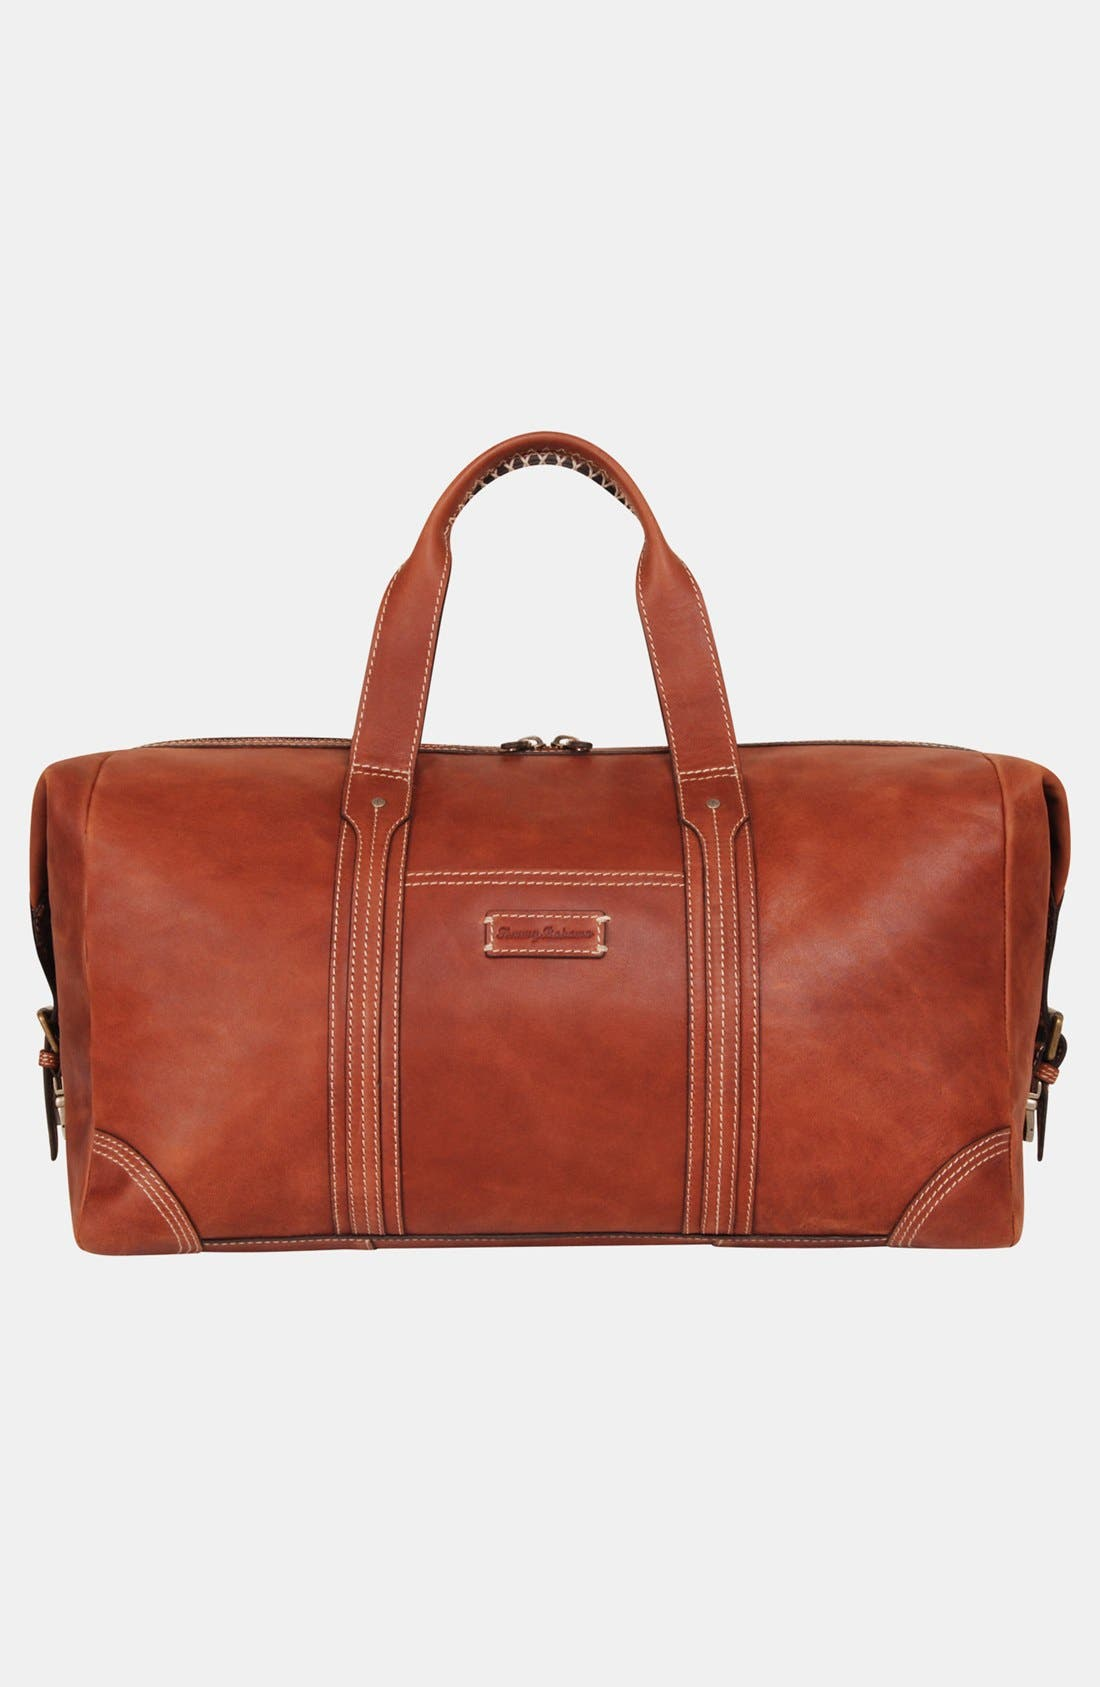 TOMMY BAHAMA Leather Duffel Bag